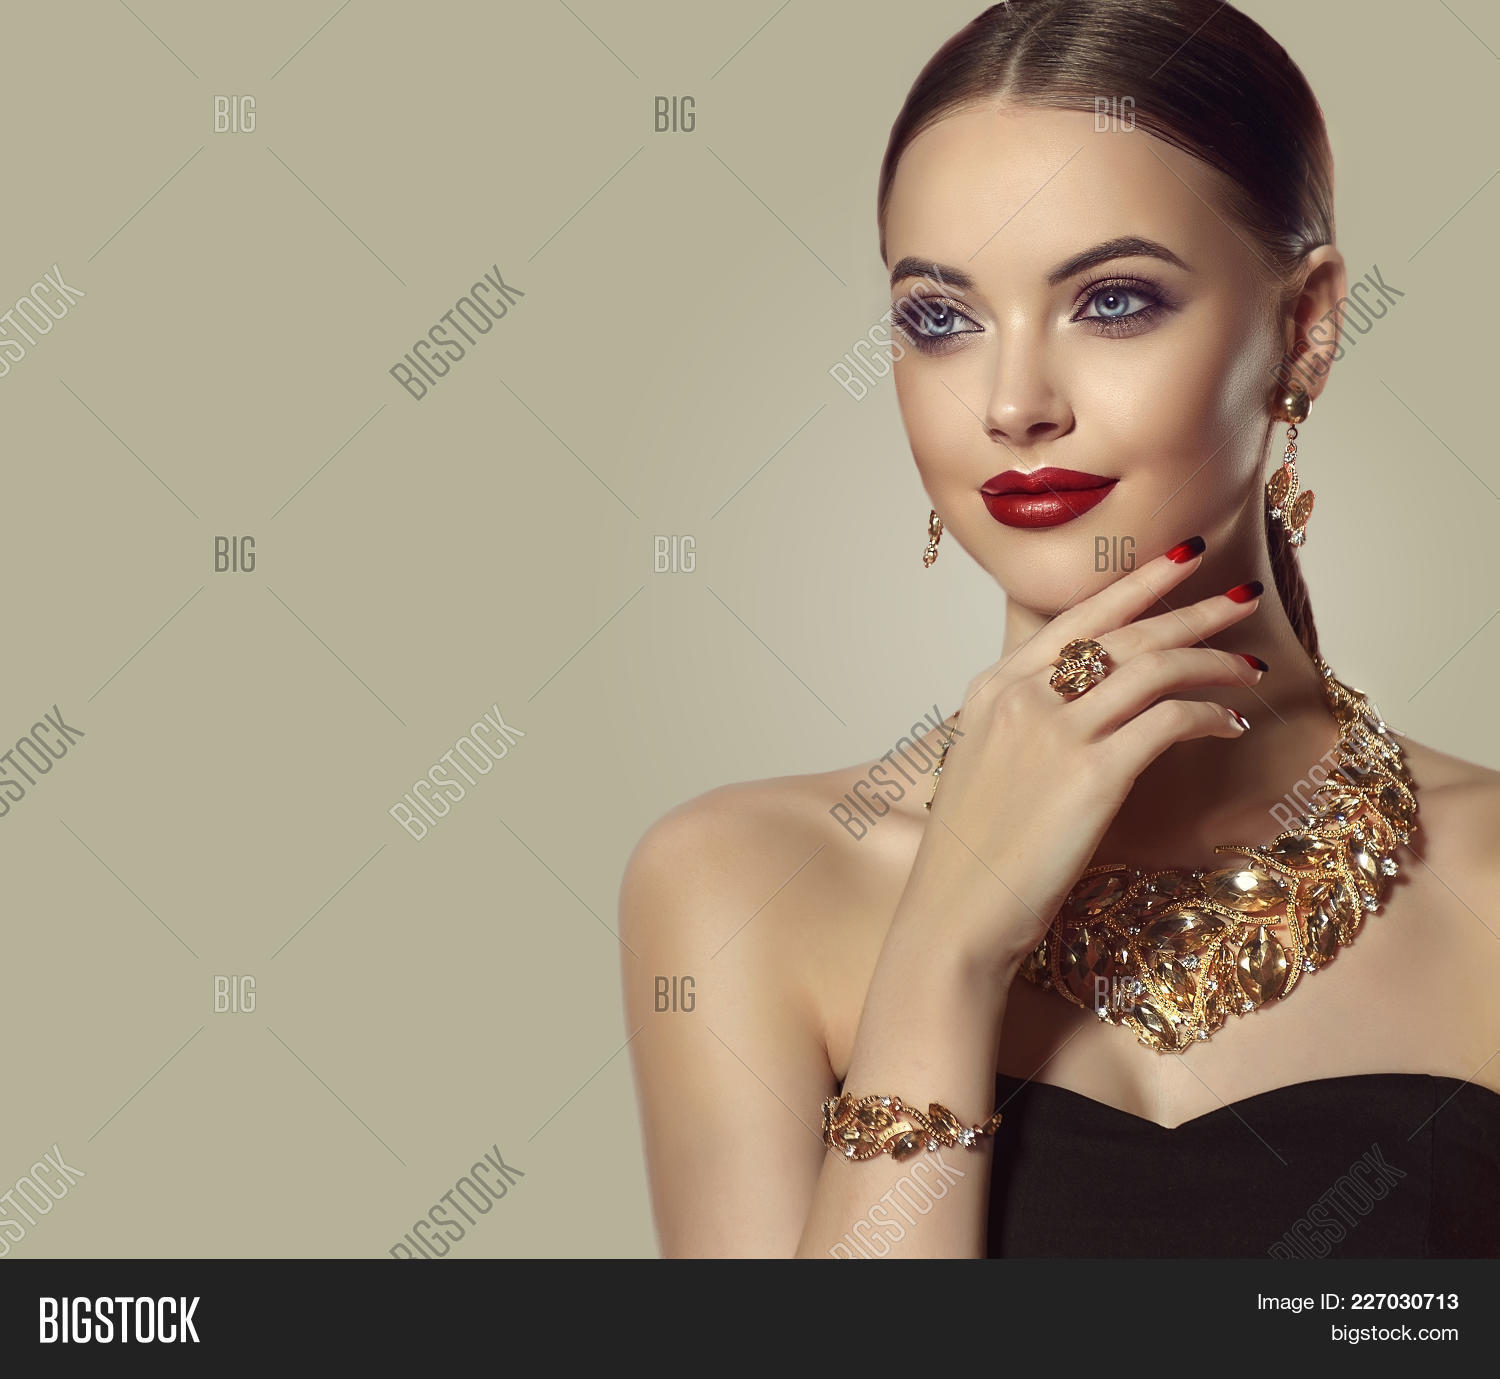 e99f2d82419 Beautiful Girl With Set Jewelry . Woman In A Necklace With A Ring, Earrings  And